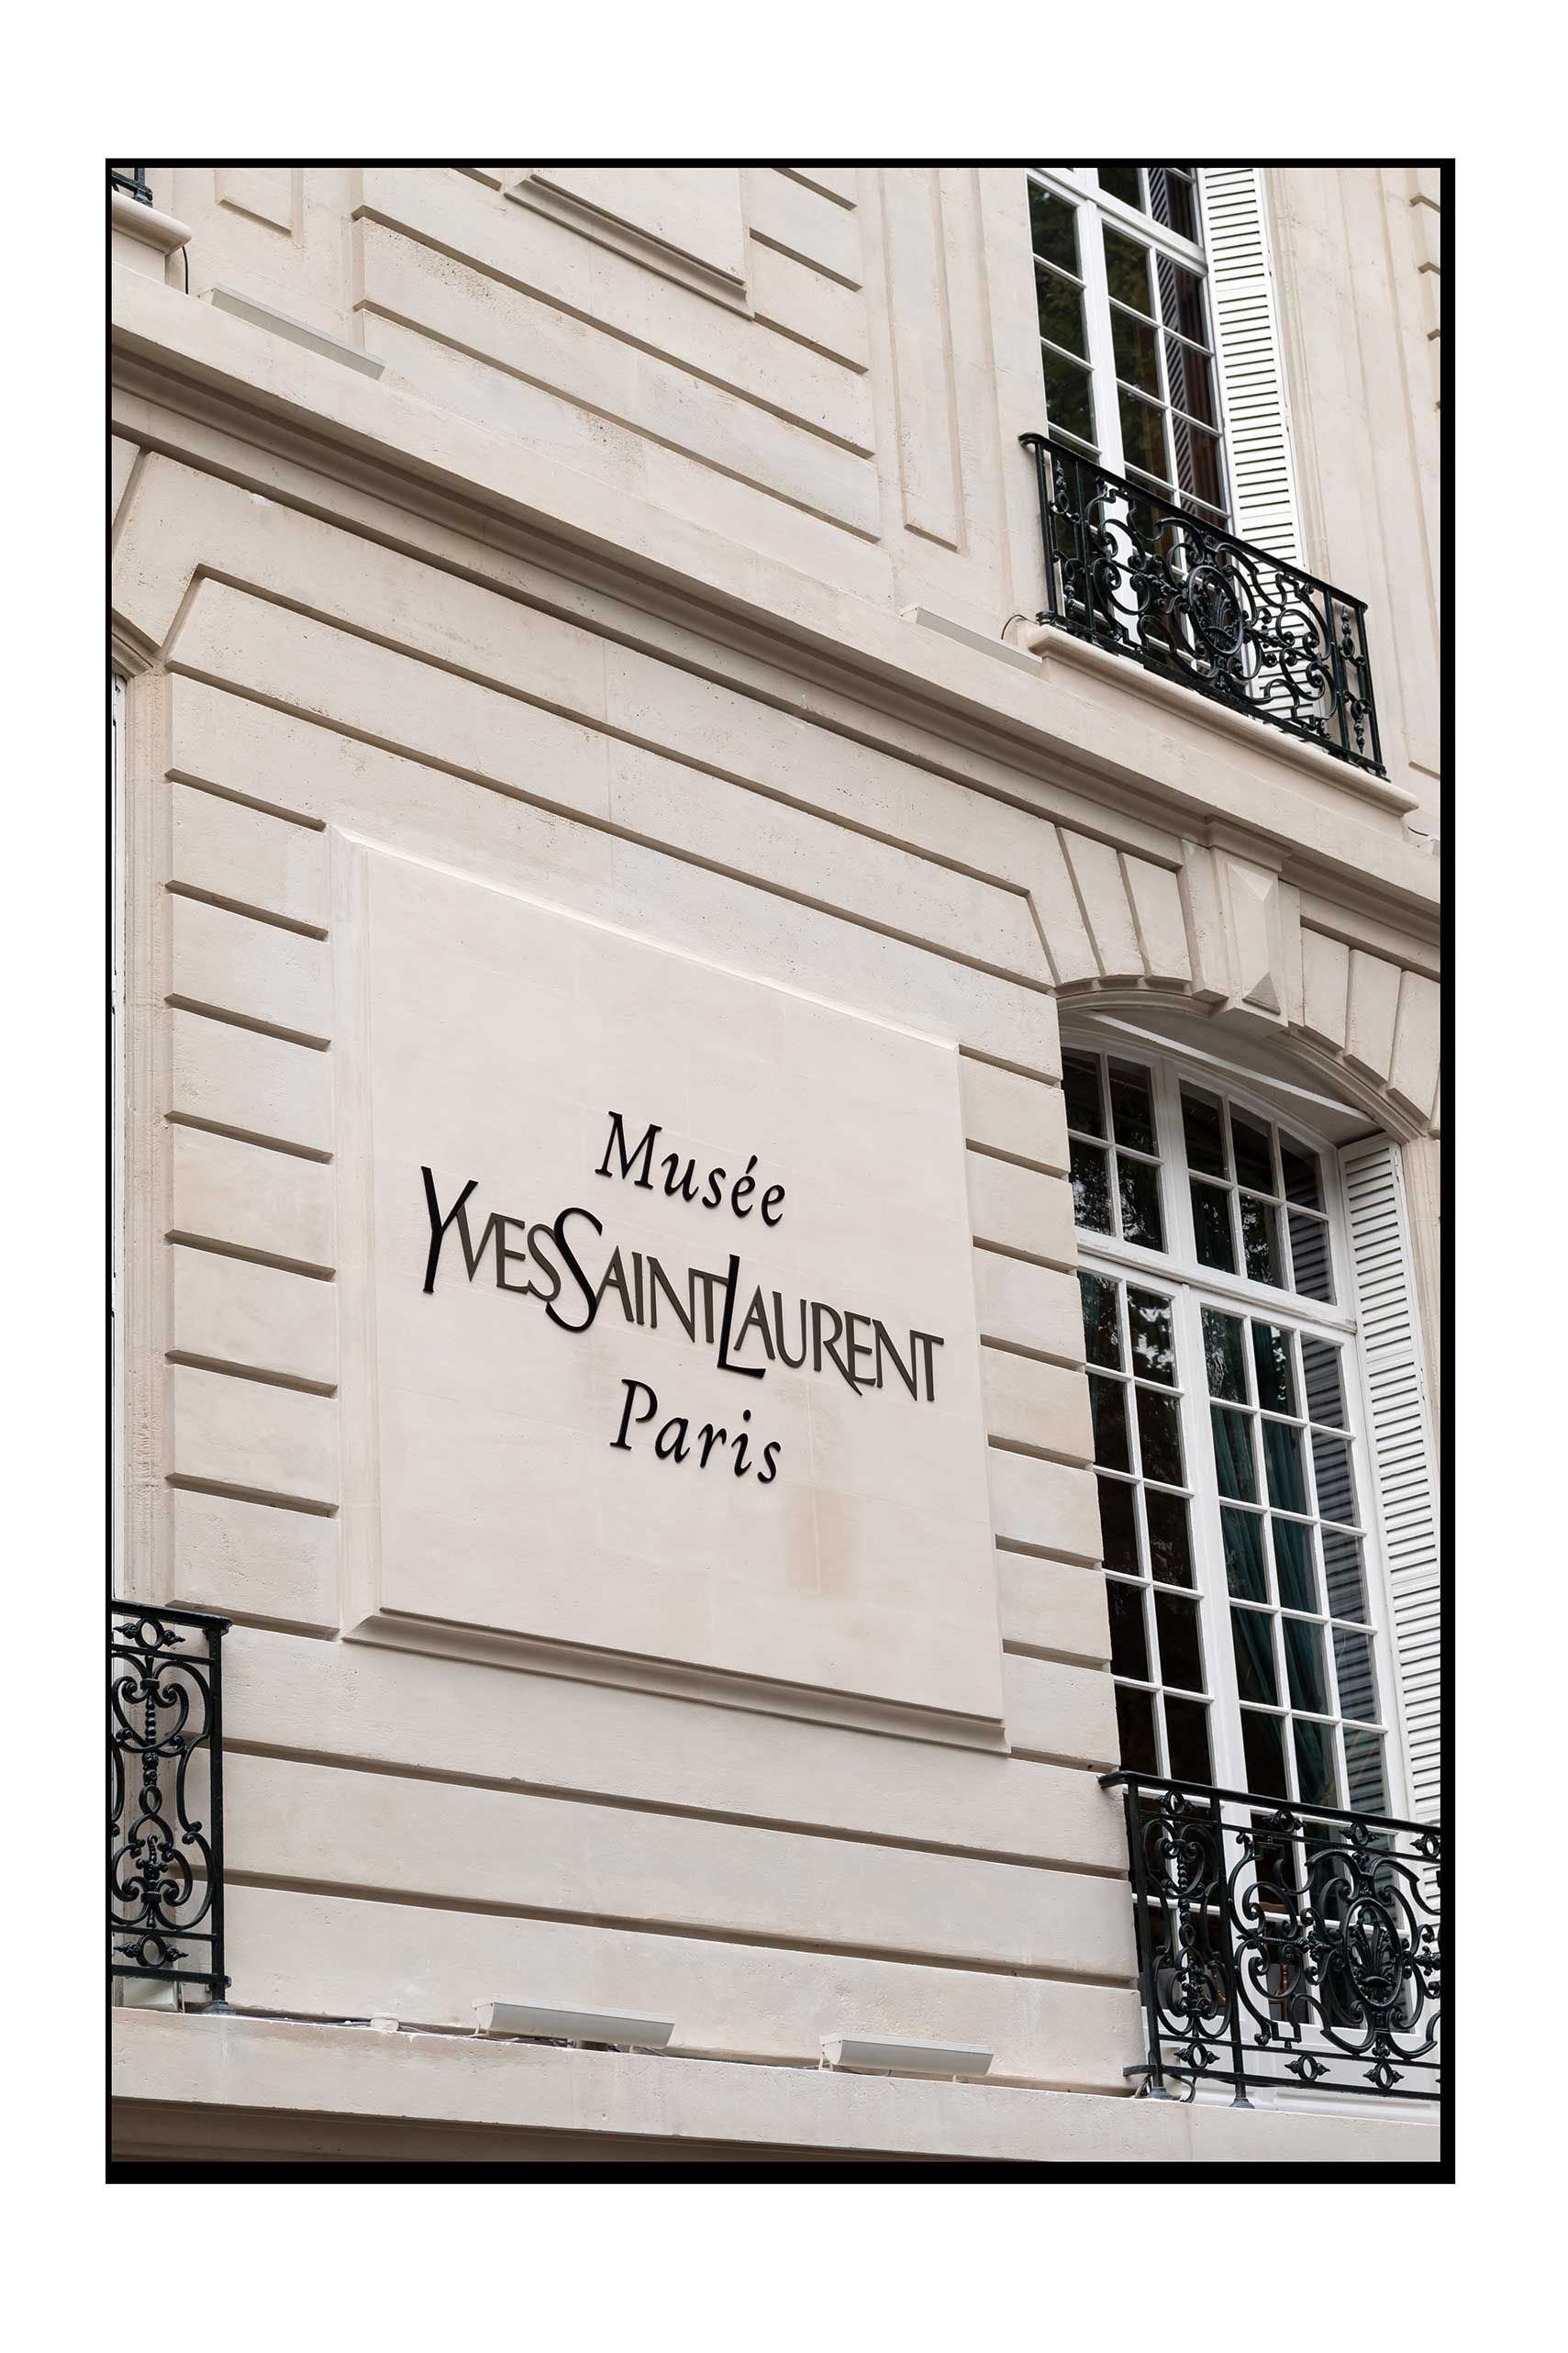 The Studio - ...of one of the greatest couturiers of the last century has opened its doors, giving us access to the exclusive haute couture salons and Saint Laurent's studio in which fashion history was made.